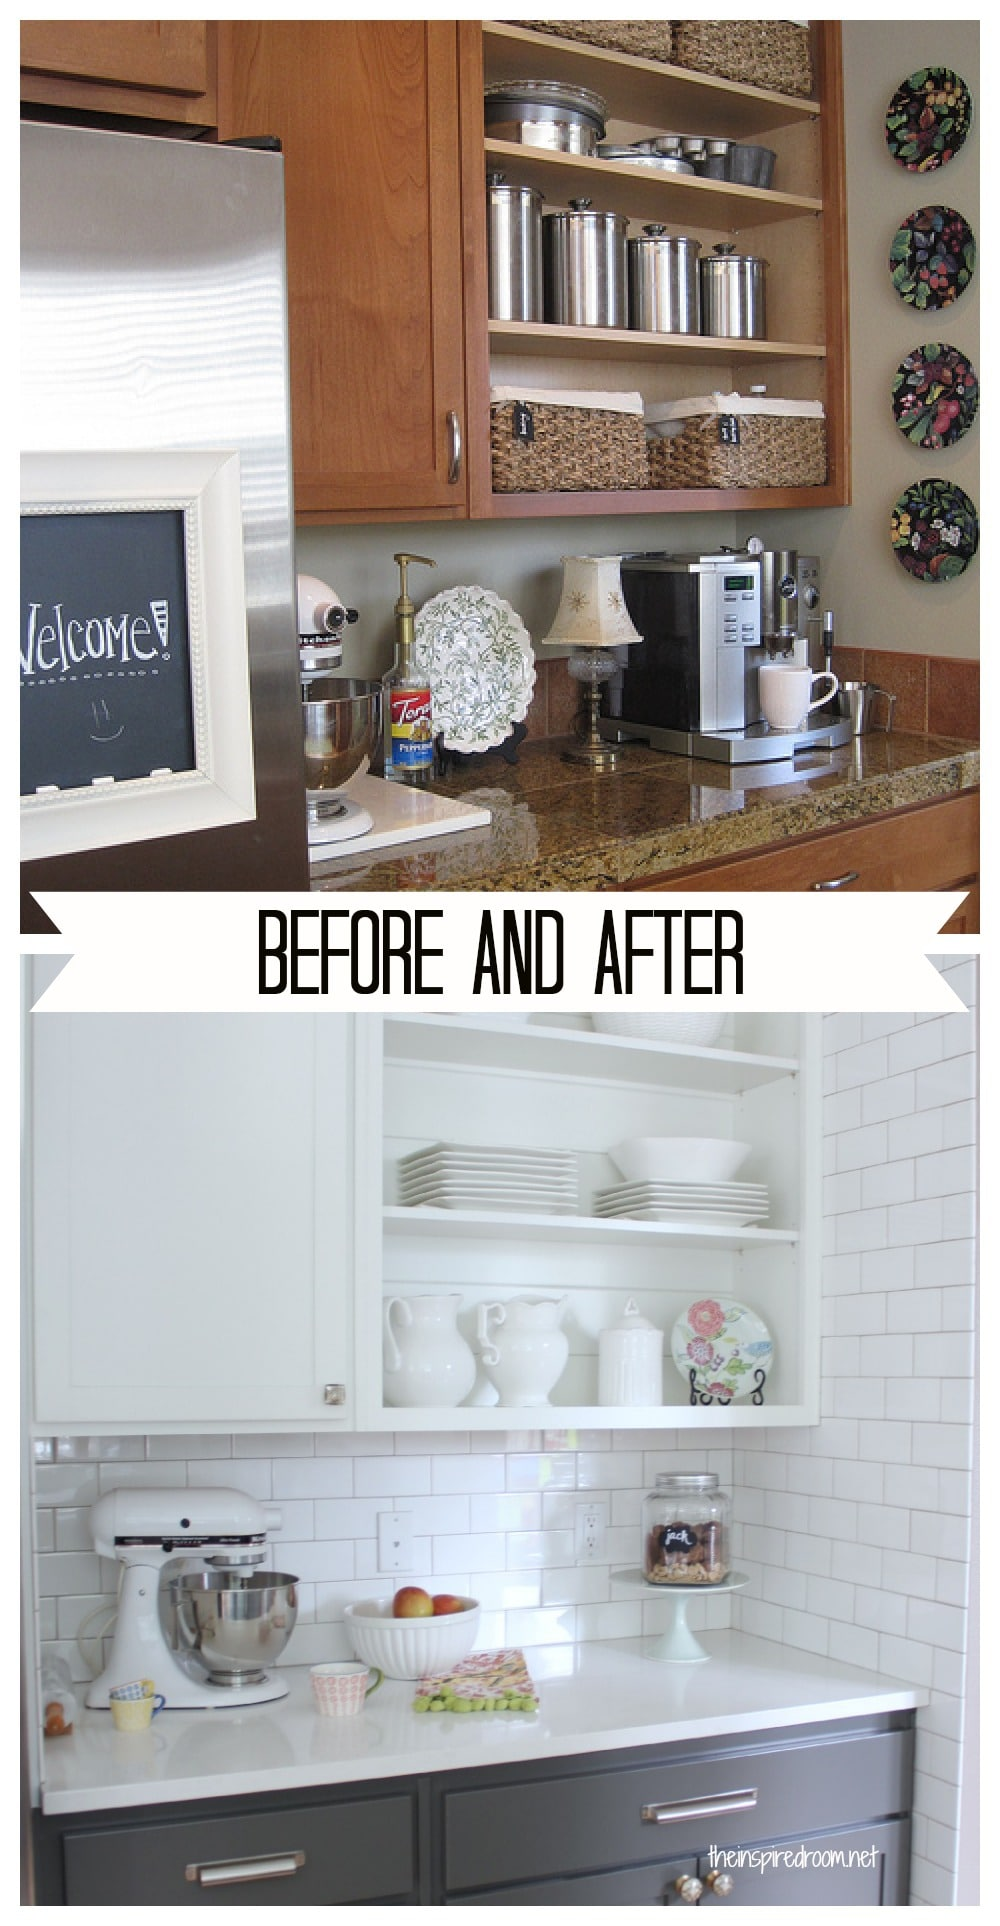 Fabulous Kitchen Cabinets Makeover Before and After 1000 x 1926 · 366 kB · jpeg